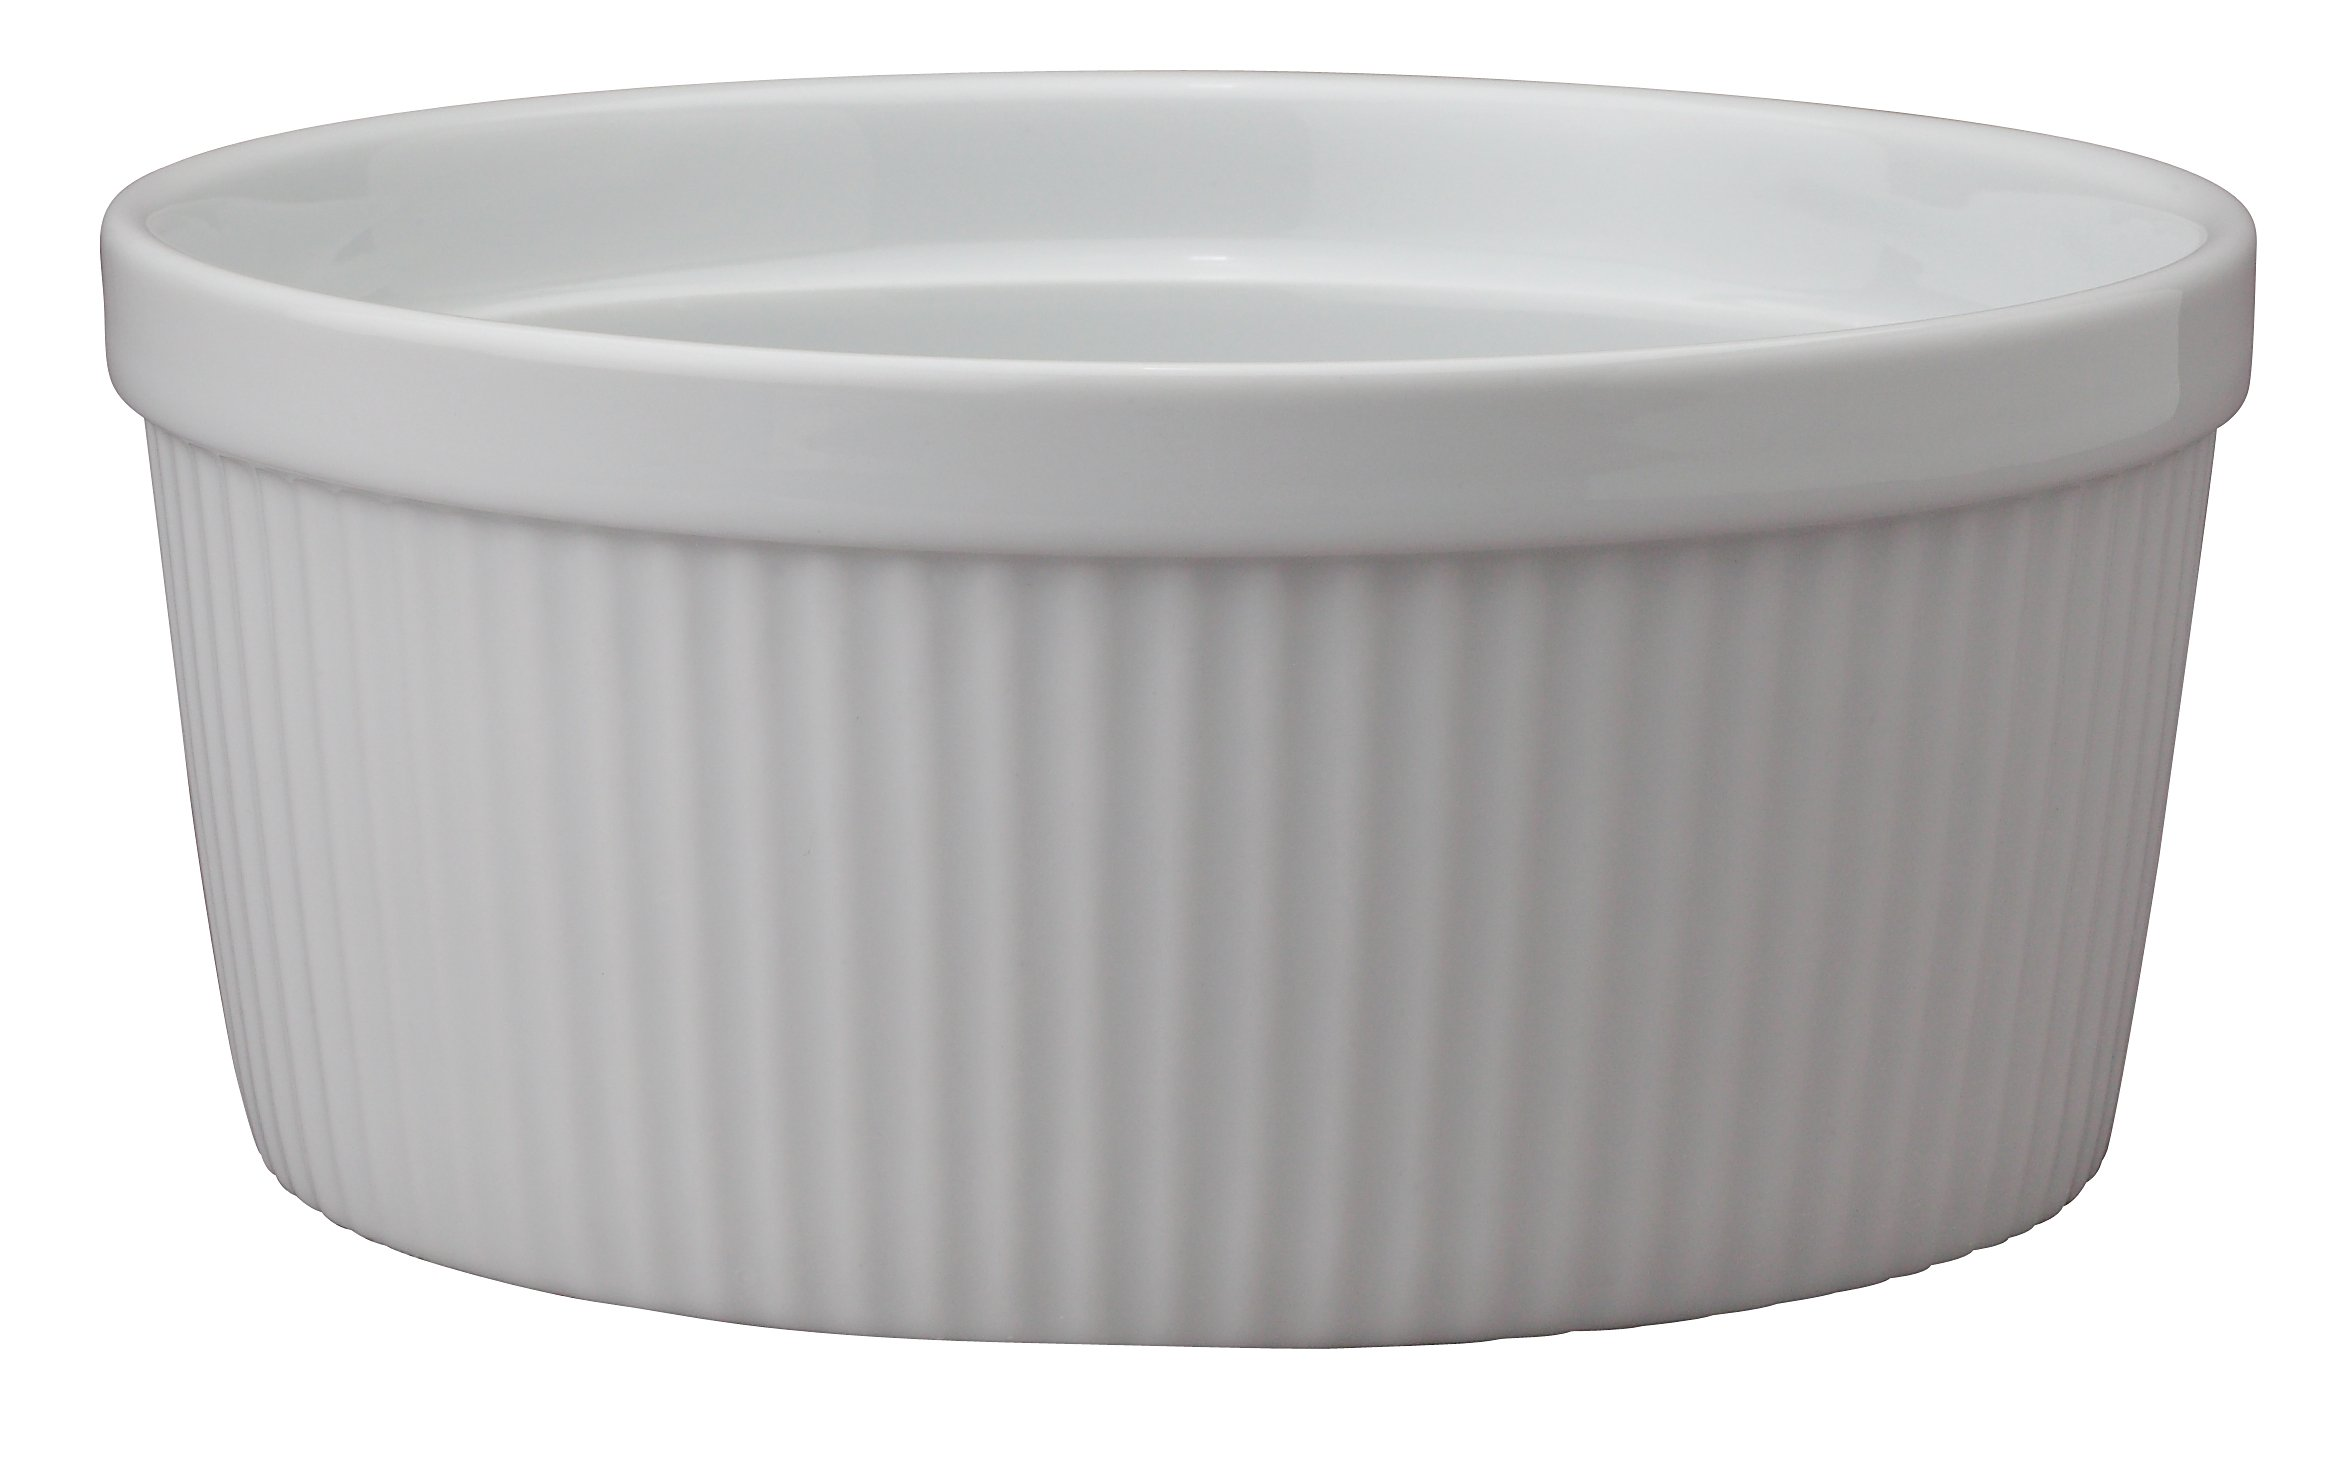 HIC Souffle, Fine White Porcelain, 7.5-Inch, 48-Ounce, 1.5-Quarts Capacity by HIC Harold Import Co.